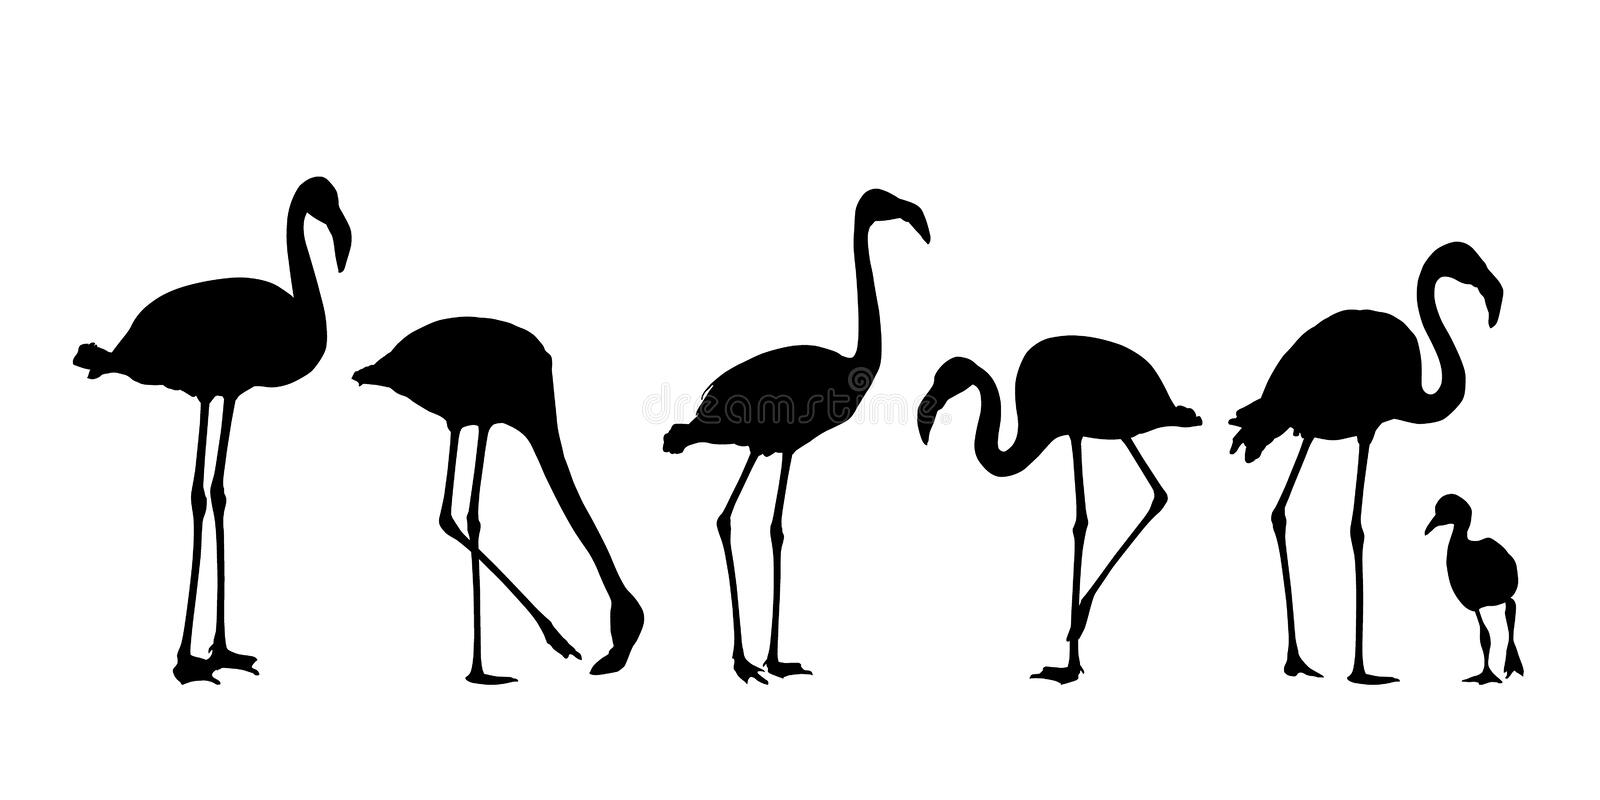 Set of realistic water bird silhouettes of flamingo, isolated on white background royalty free illustration